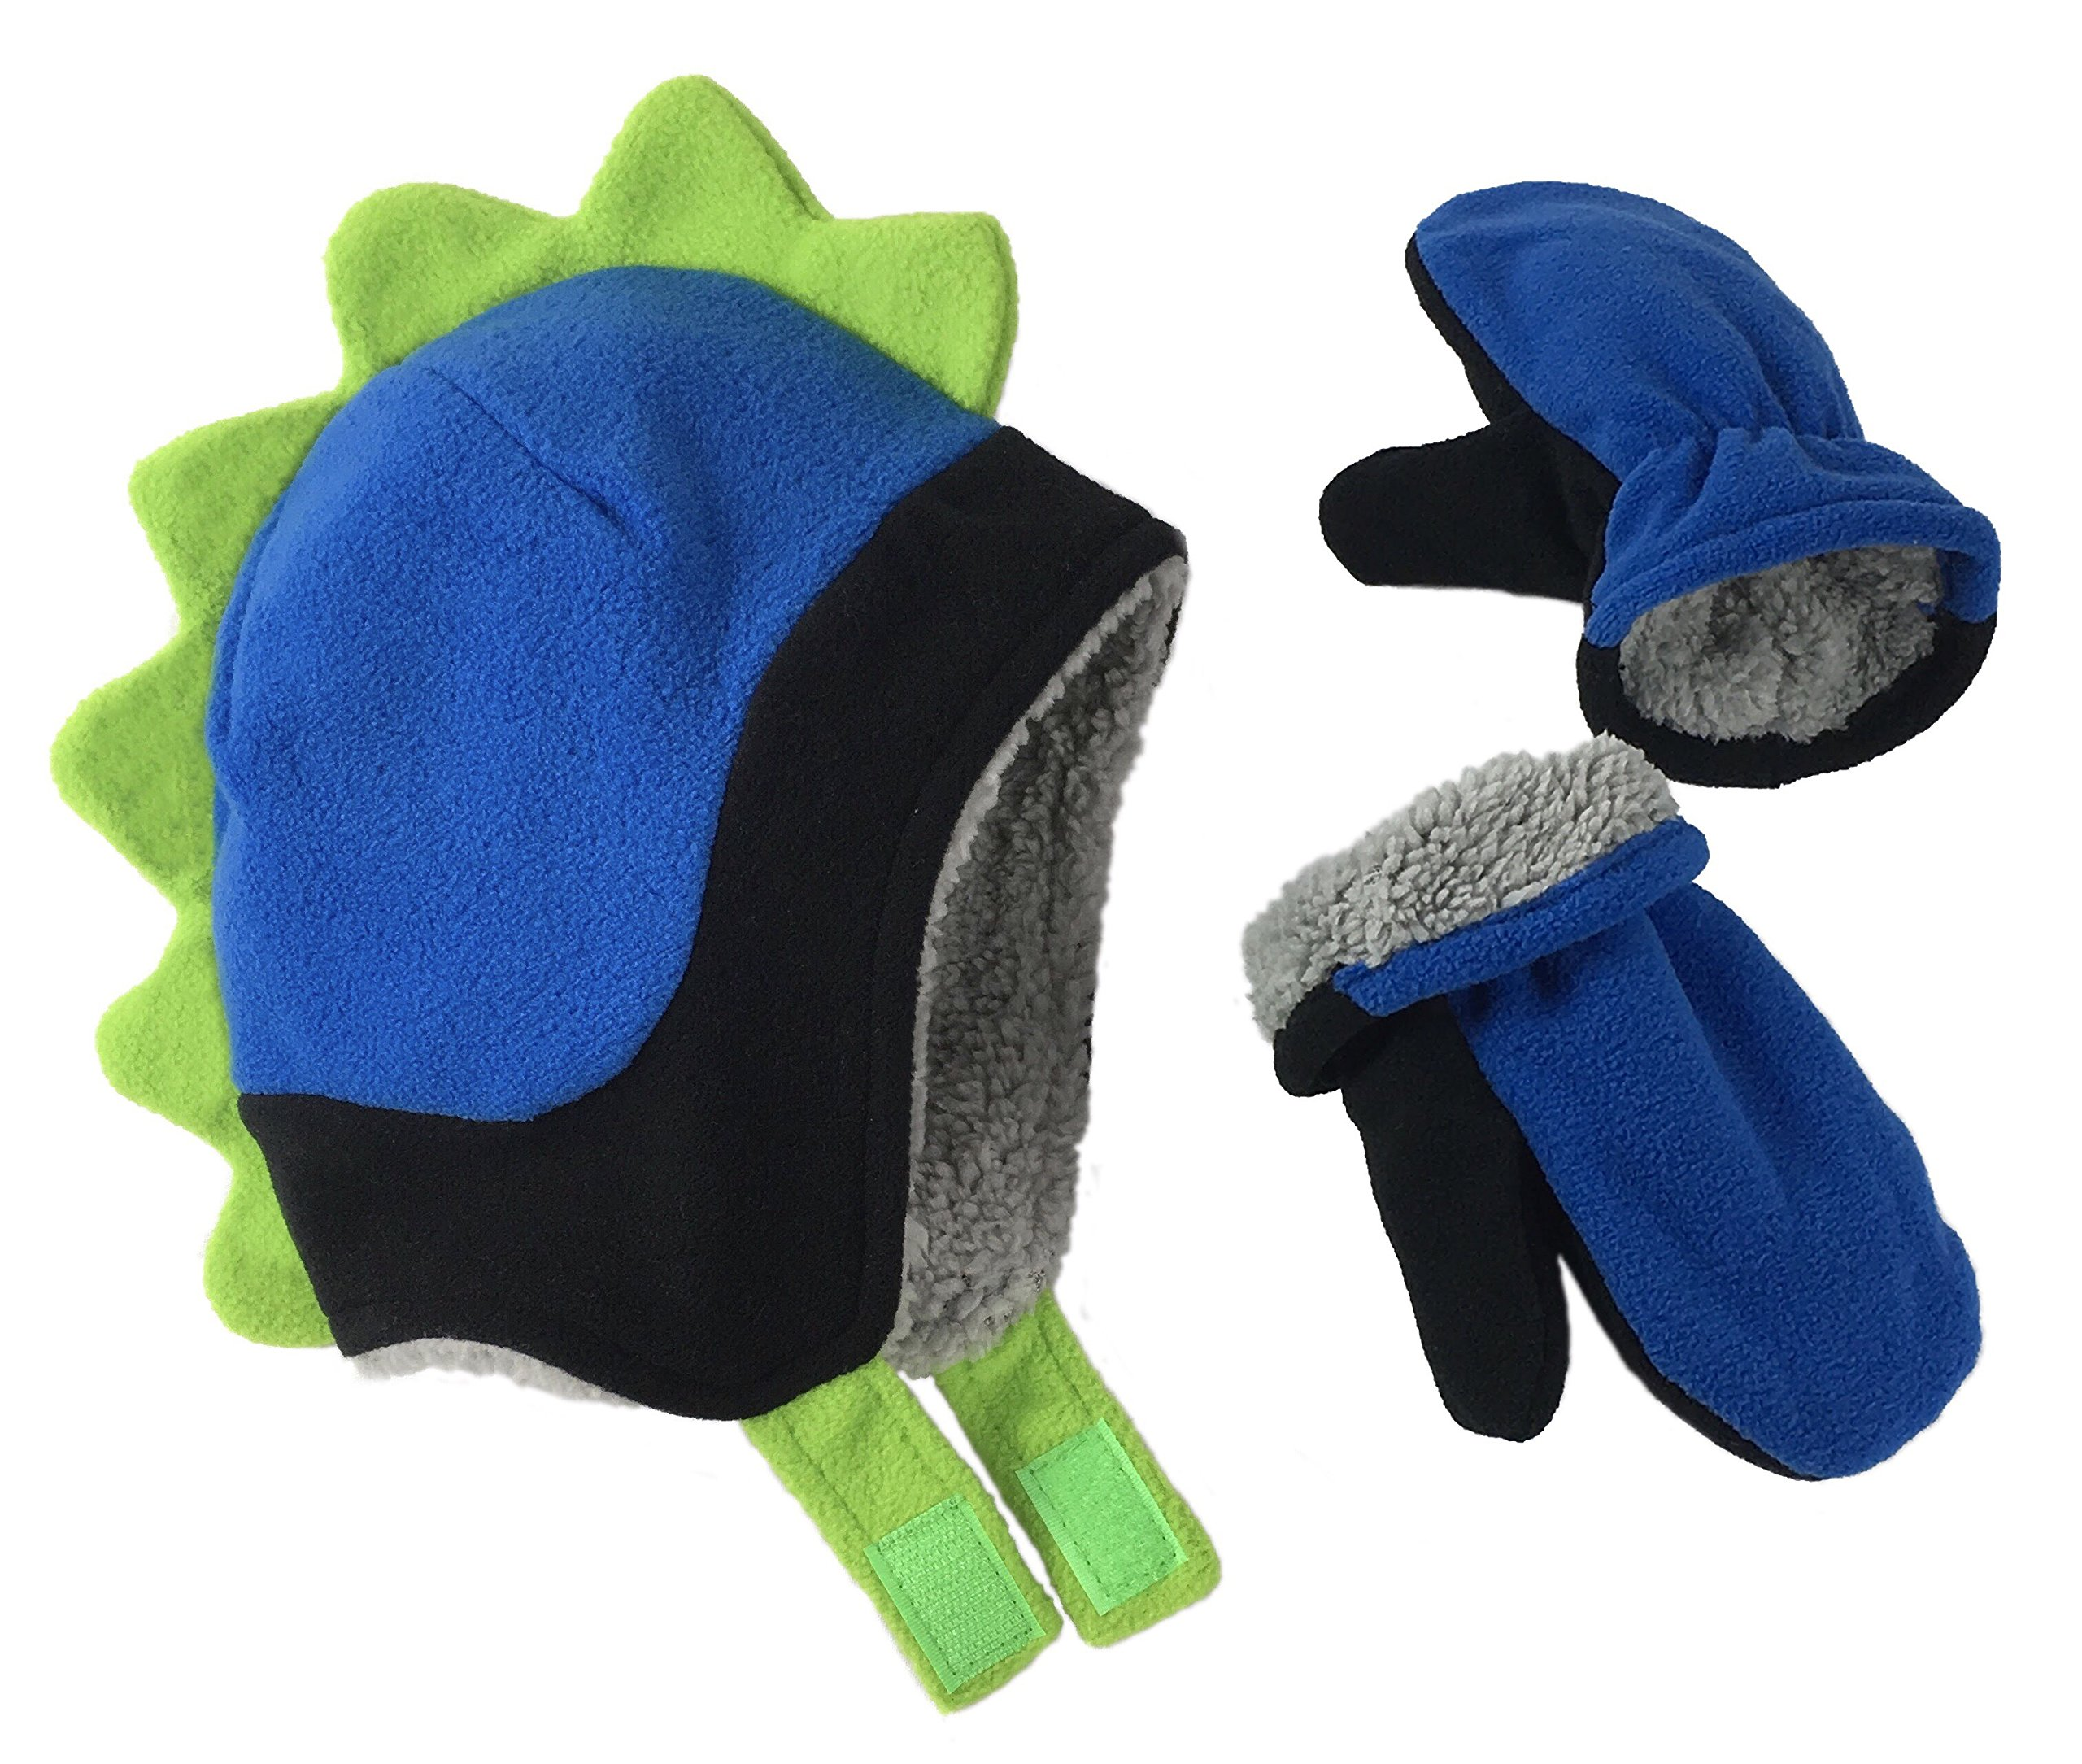 N'Ice Caps Little Boys and Baby Soft Sherpa Lined Fleece Dino Hat Mitten Set (18-36mos, Black/Royal/Neon Green)